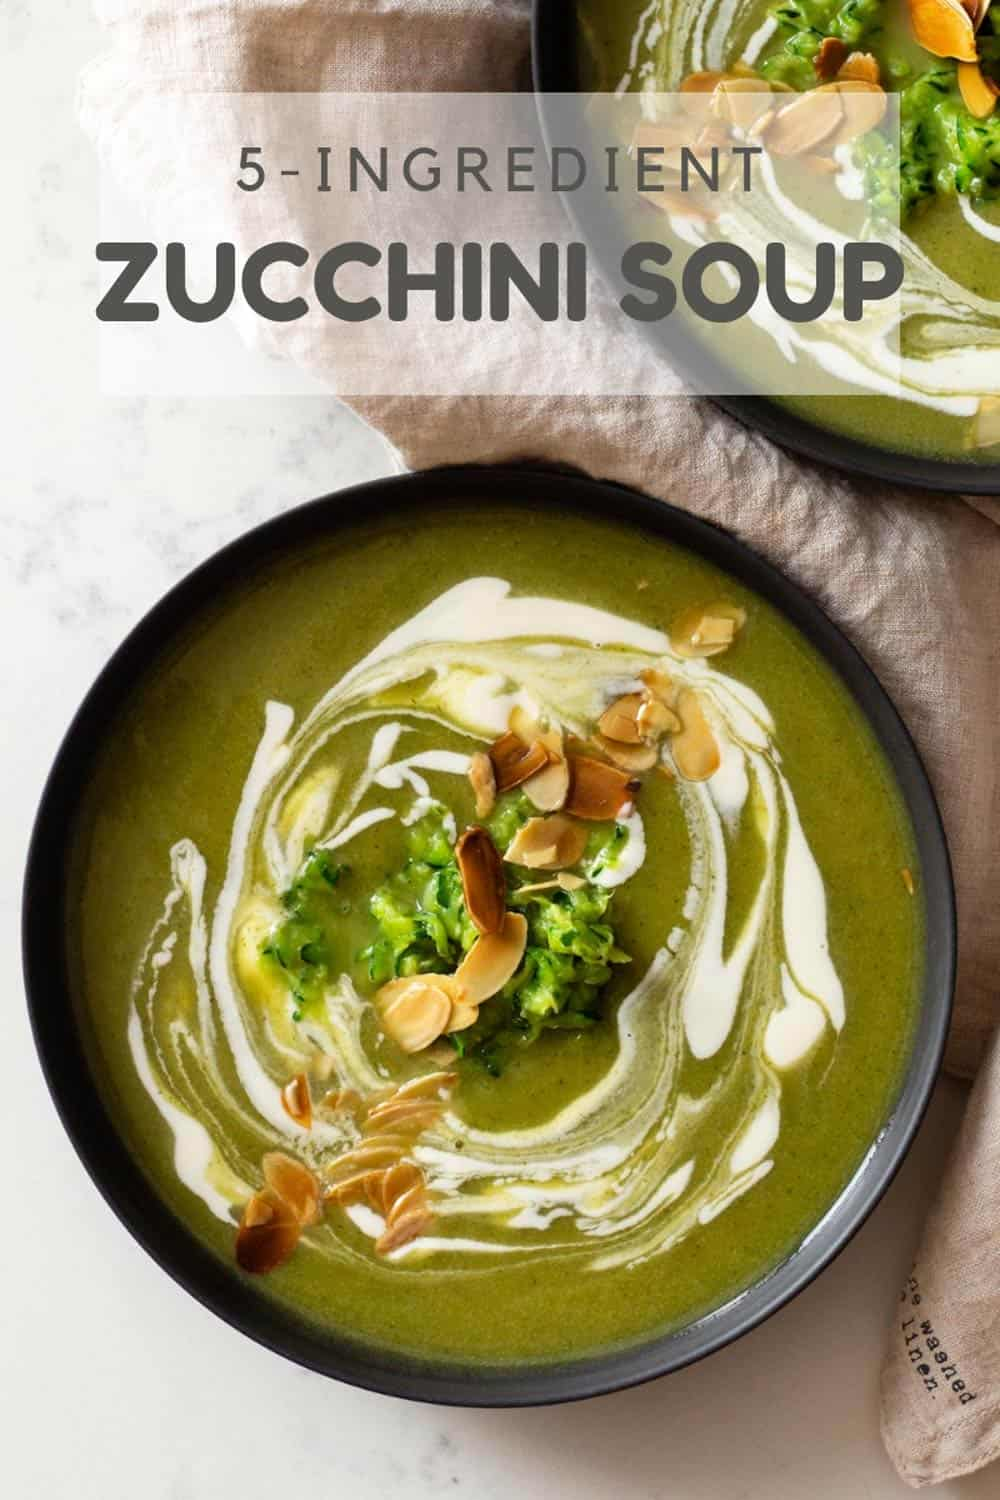 Zucchini Soup in Bowl topped with crème fraîche and sliced almonds